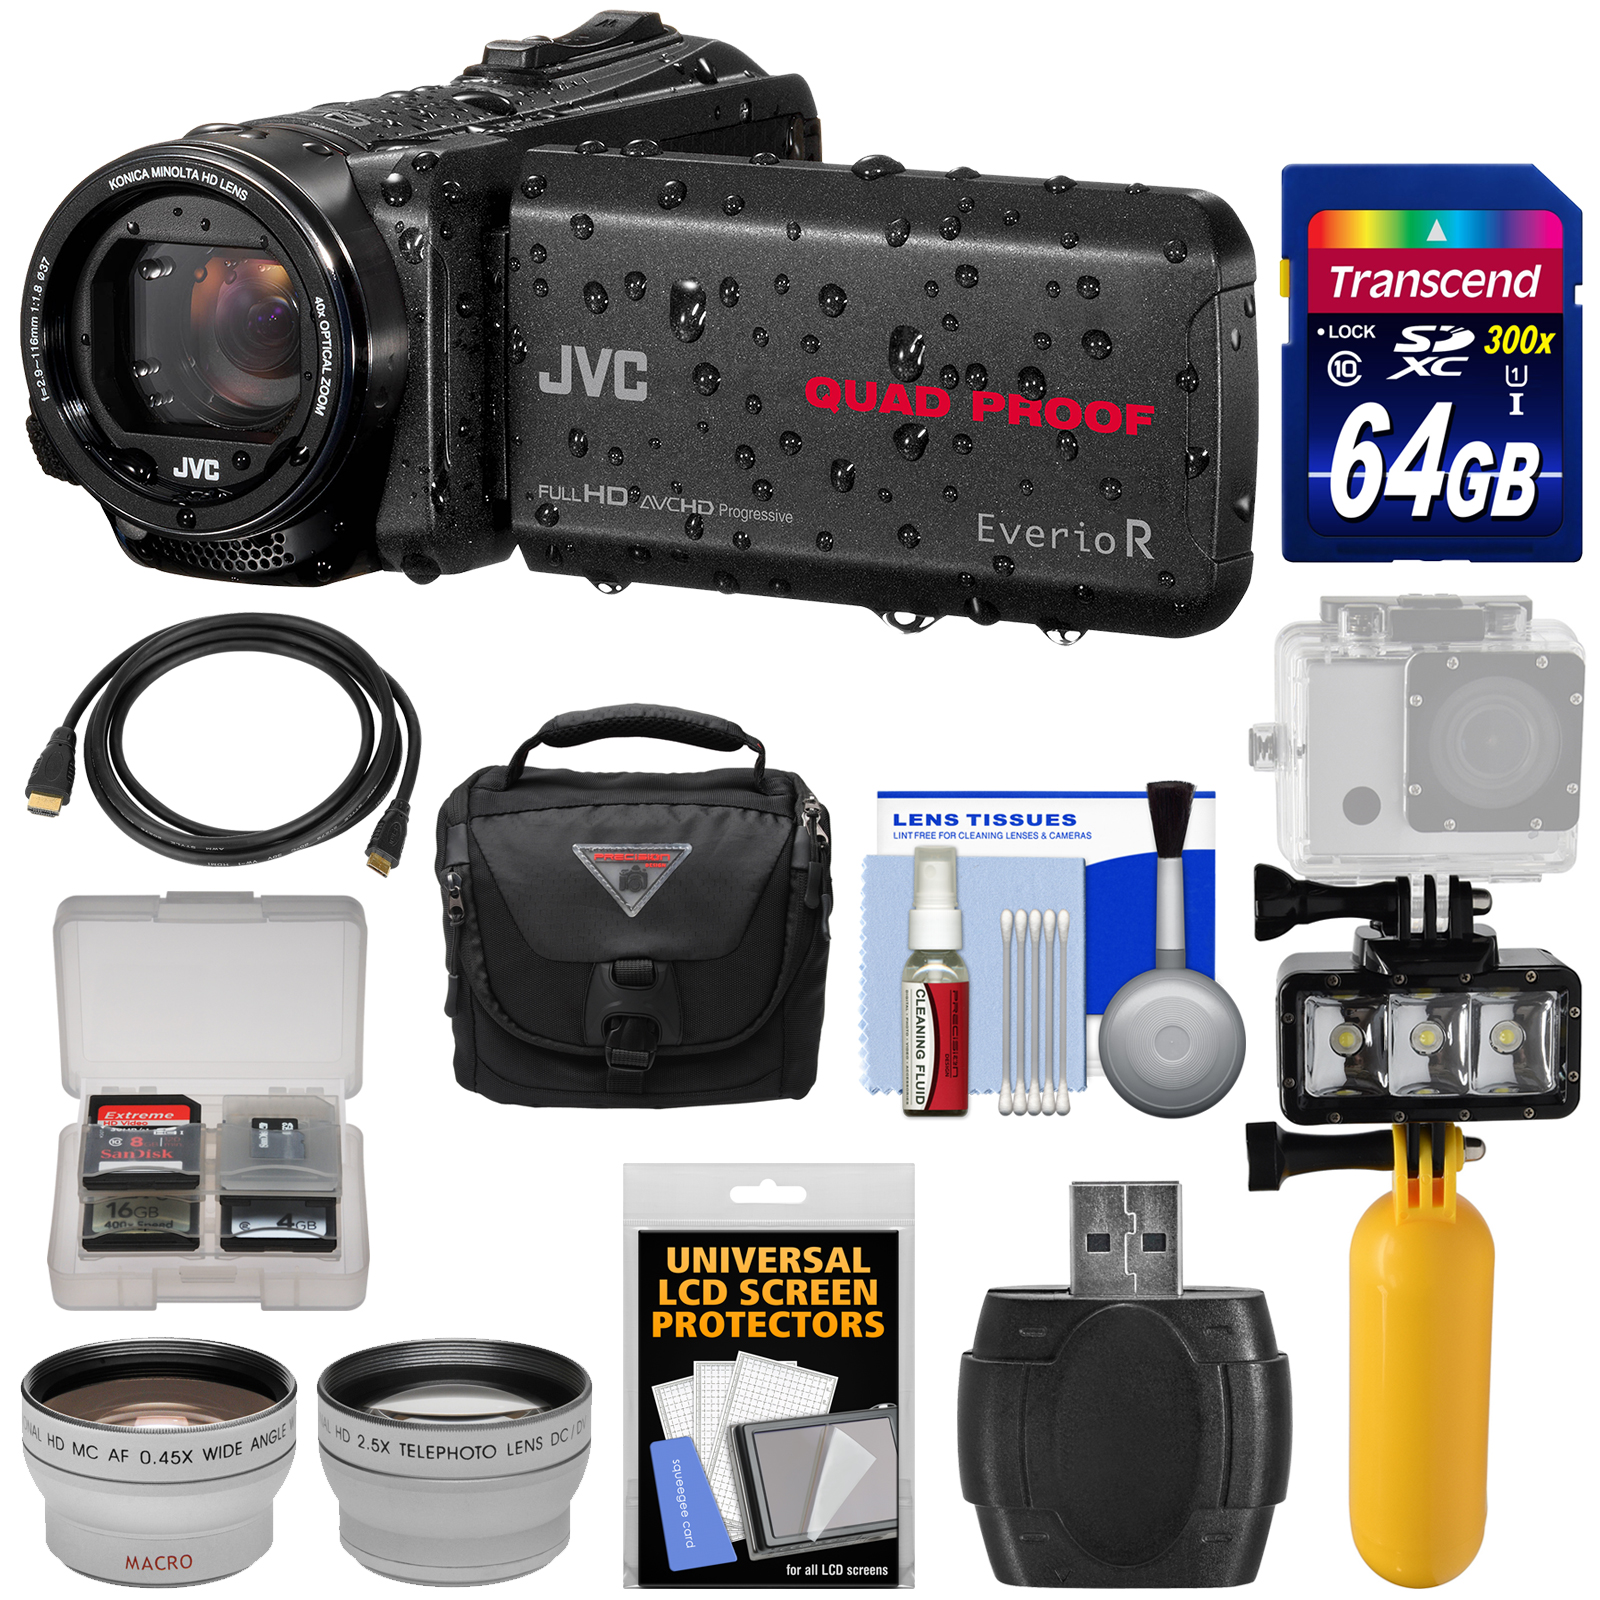 JVC Everio GZ-R550 Quad Proof Full HD 32GB Digital Video ...